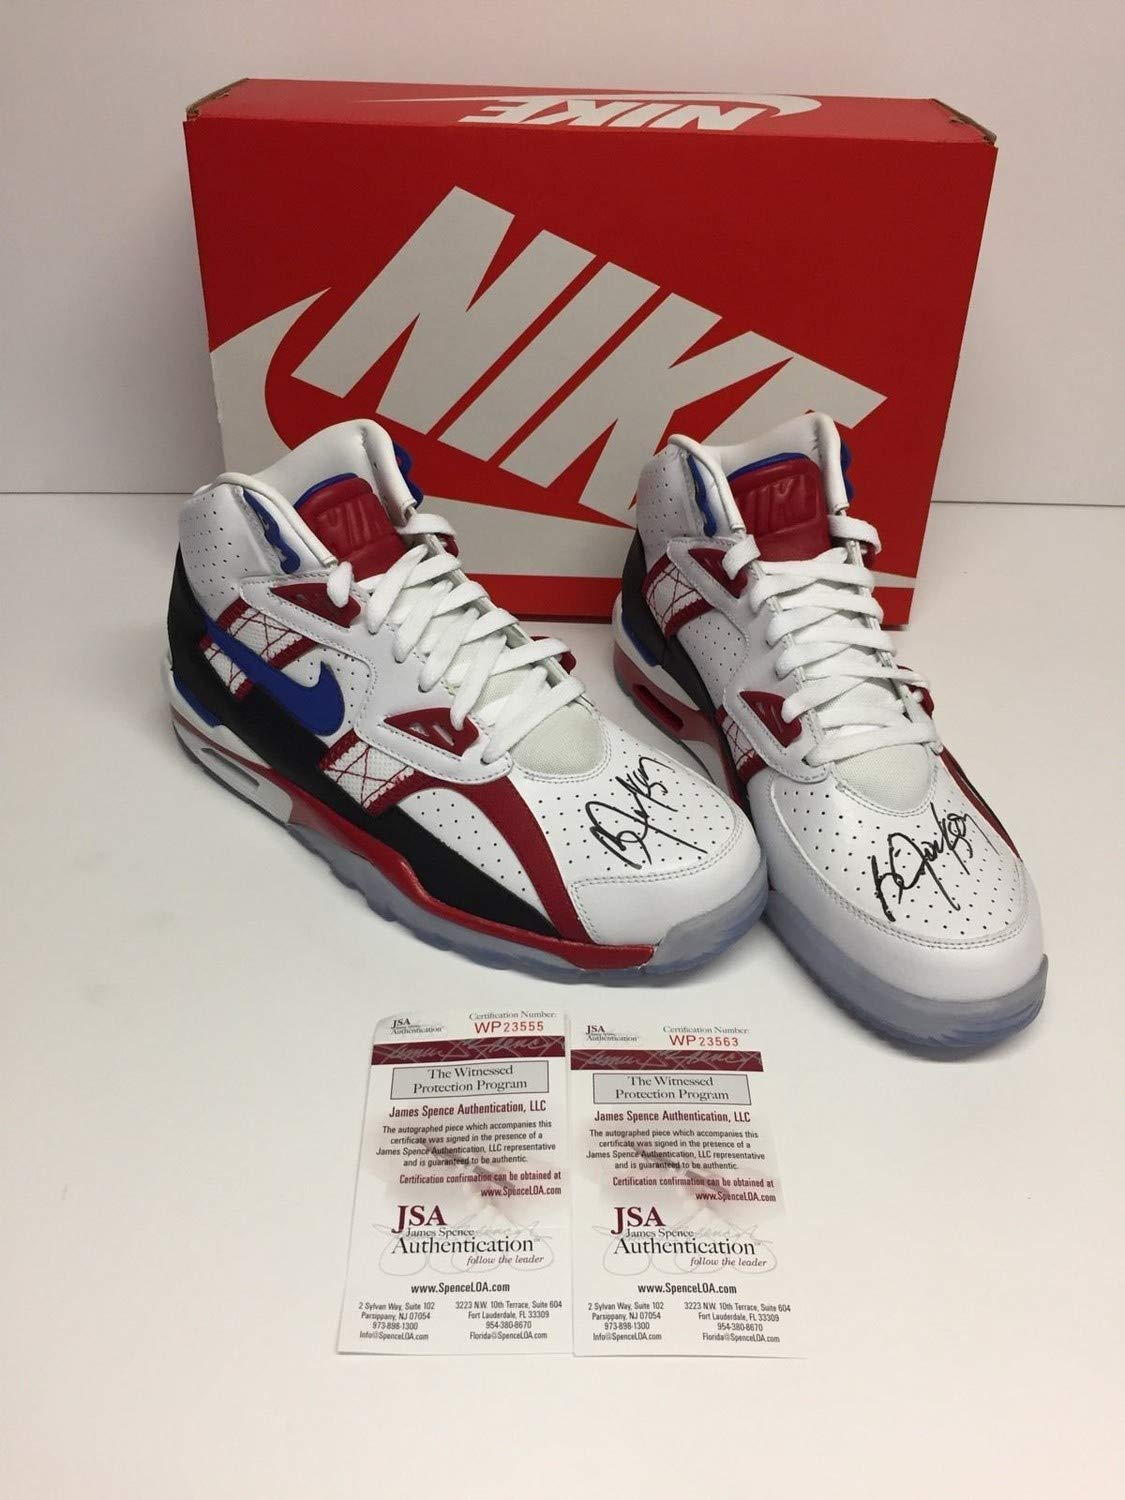 Bo Jackson Dual Autographed Signed Nike Air Trainer Sc High Le Qs Bo Knows Hockey Shoes JSA Authentic